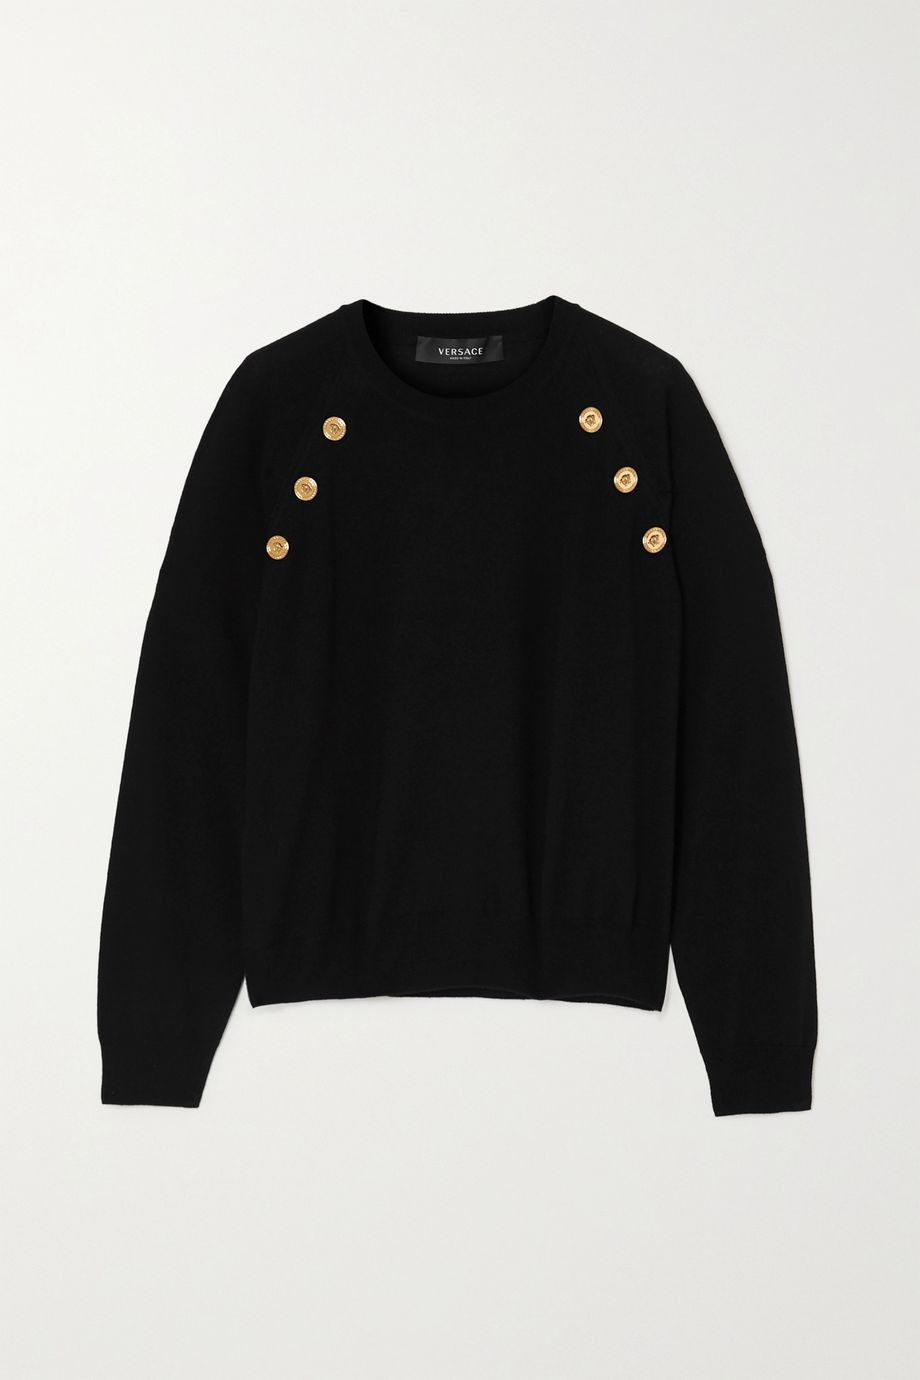 Versace Button-embellished wool sweater